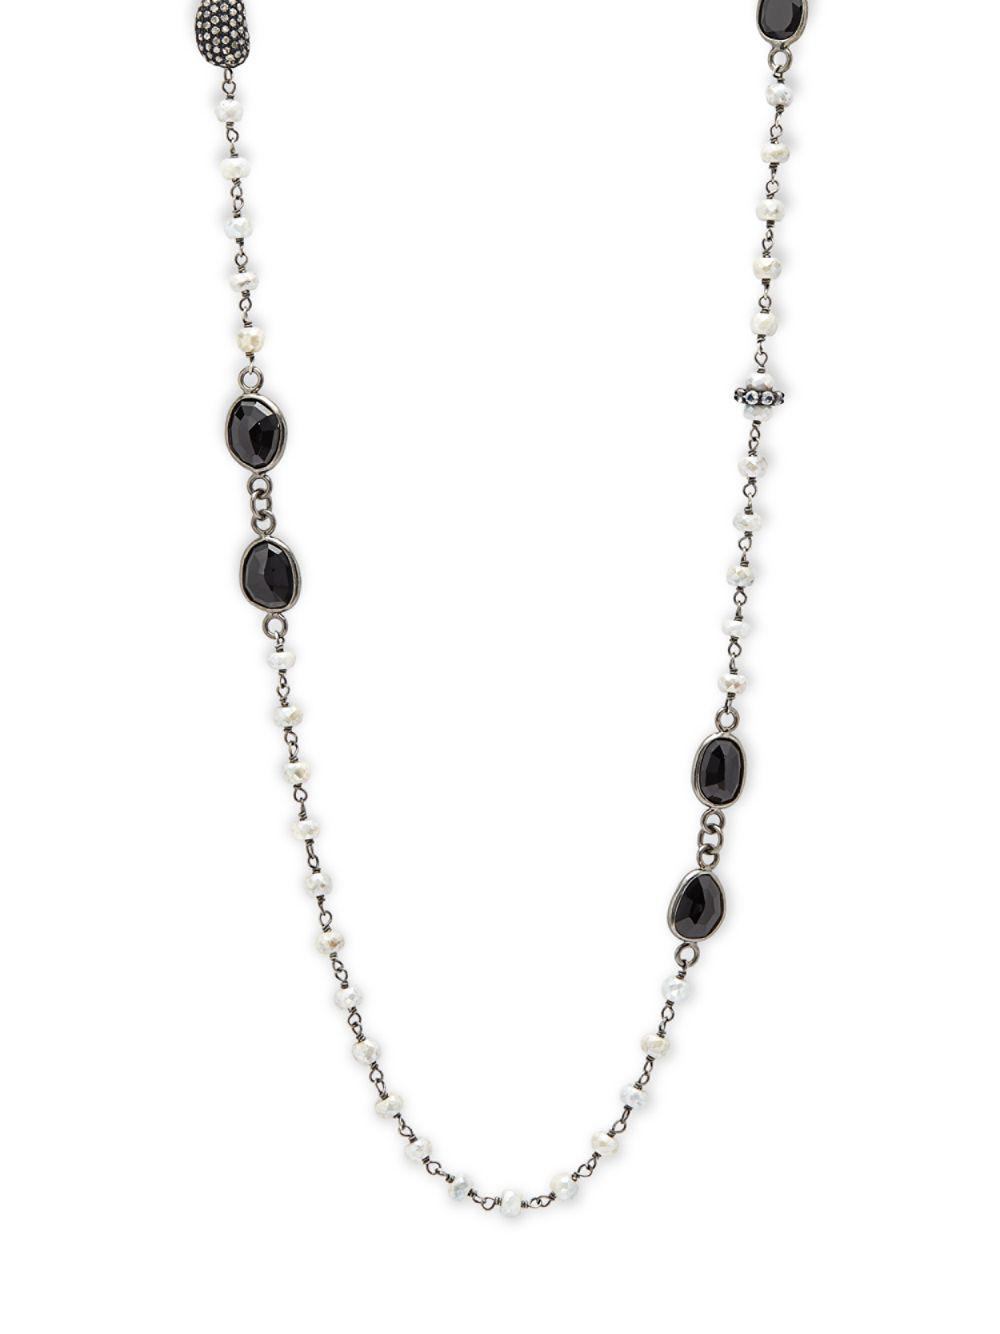 Bavna Single-Strand Black Spinel Necklace YgUSJOUaa